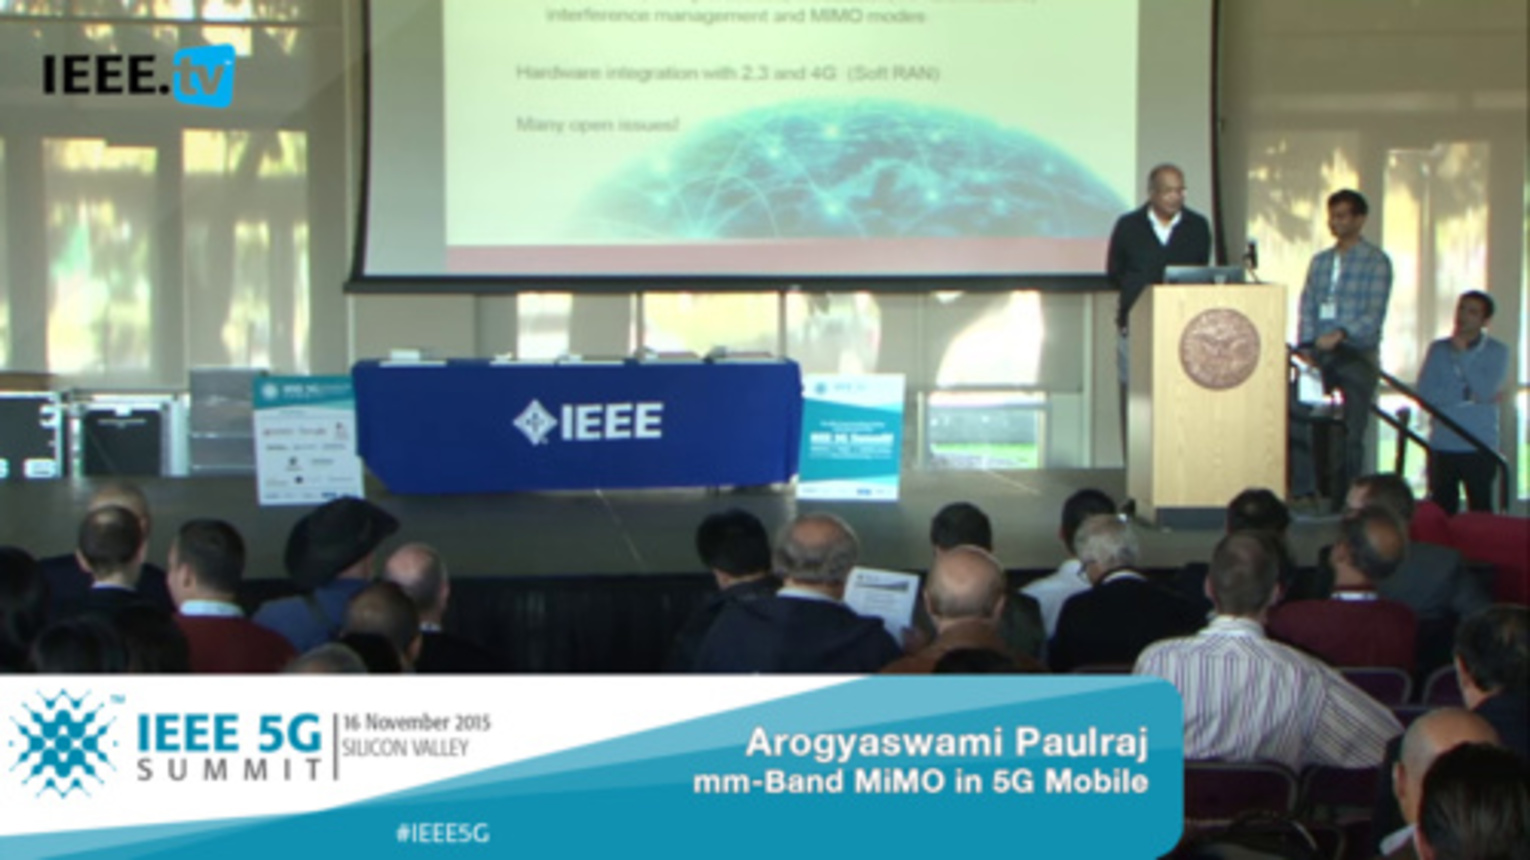 Silicon Valley 5G Summit 2015 - Arogyaswami Paulraj - mm-Band MIMO in 5G Mobile